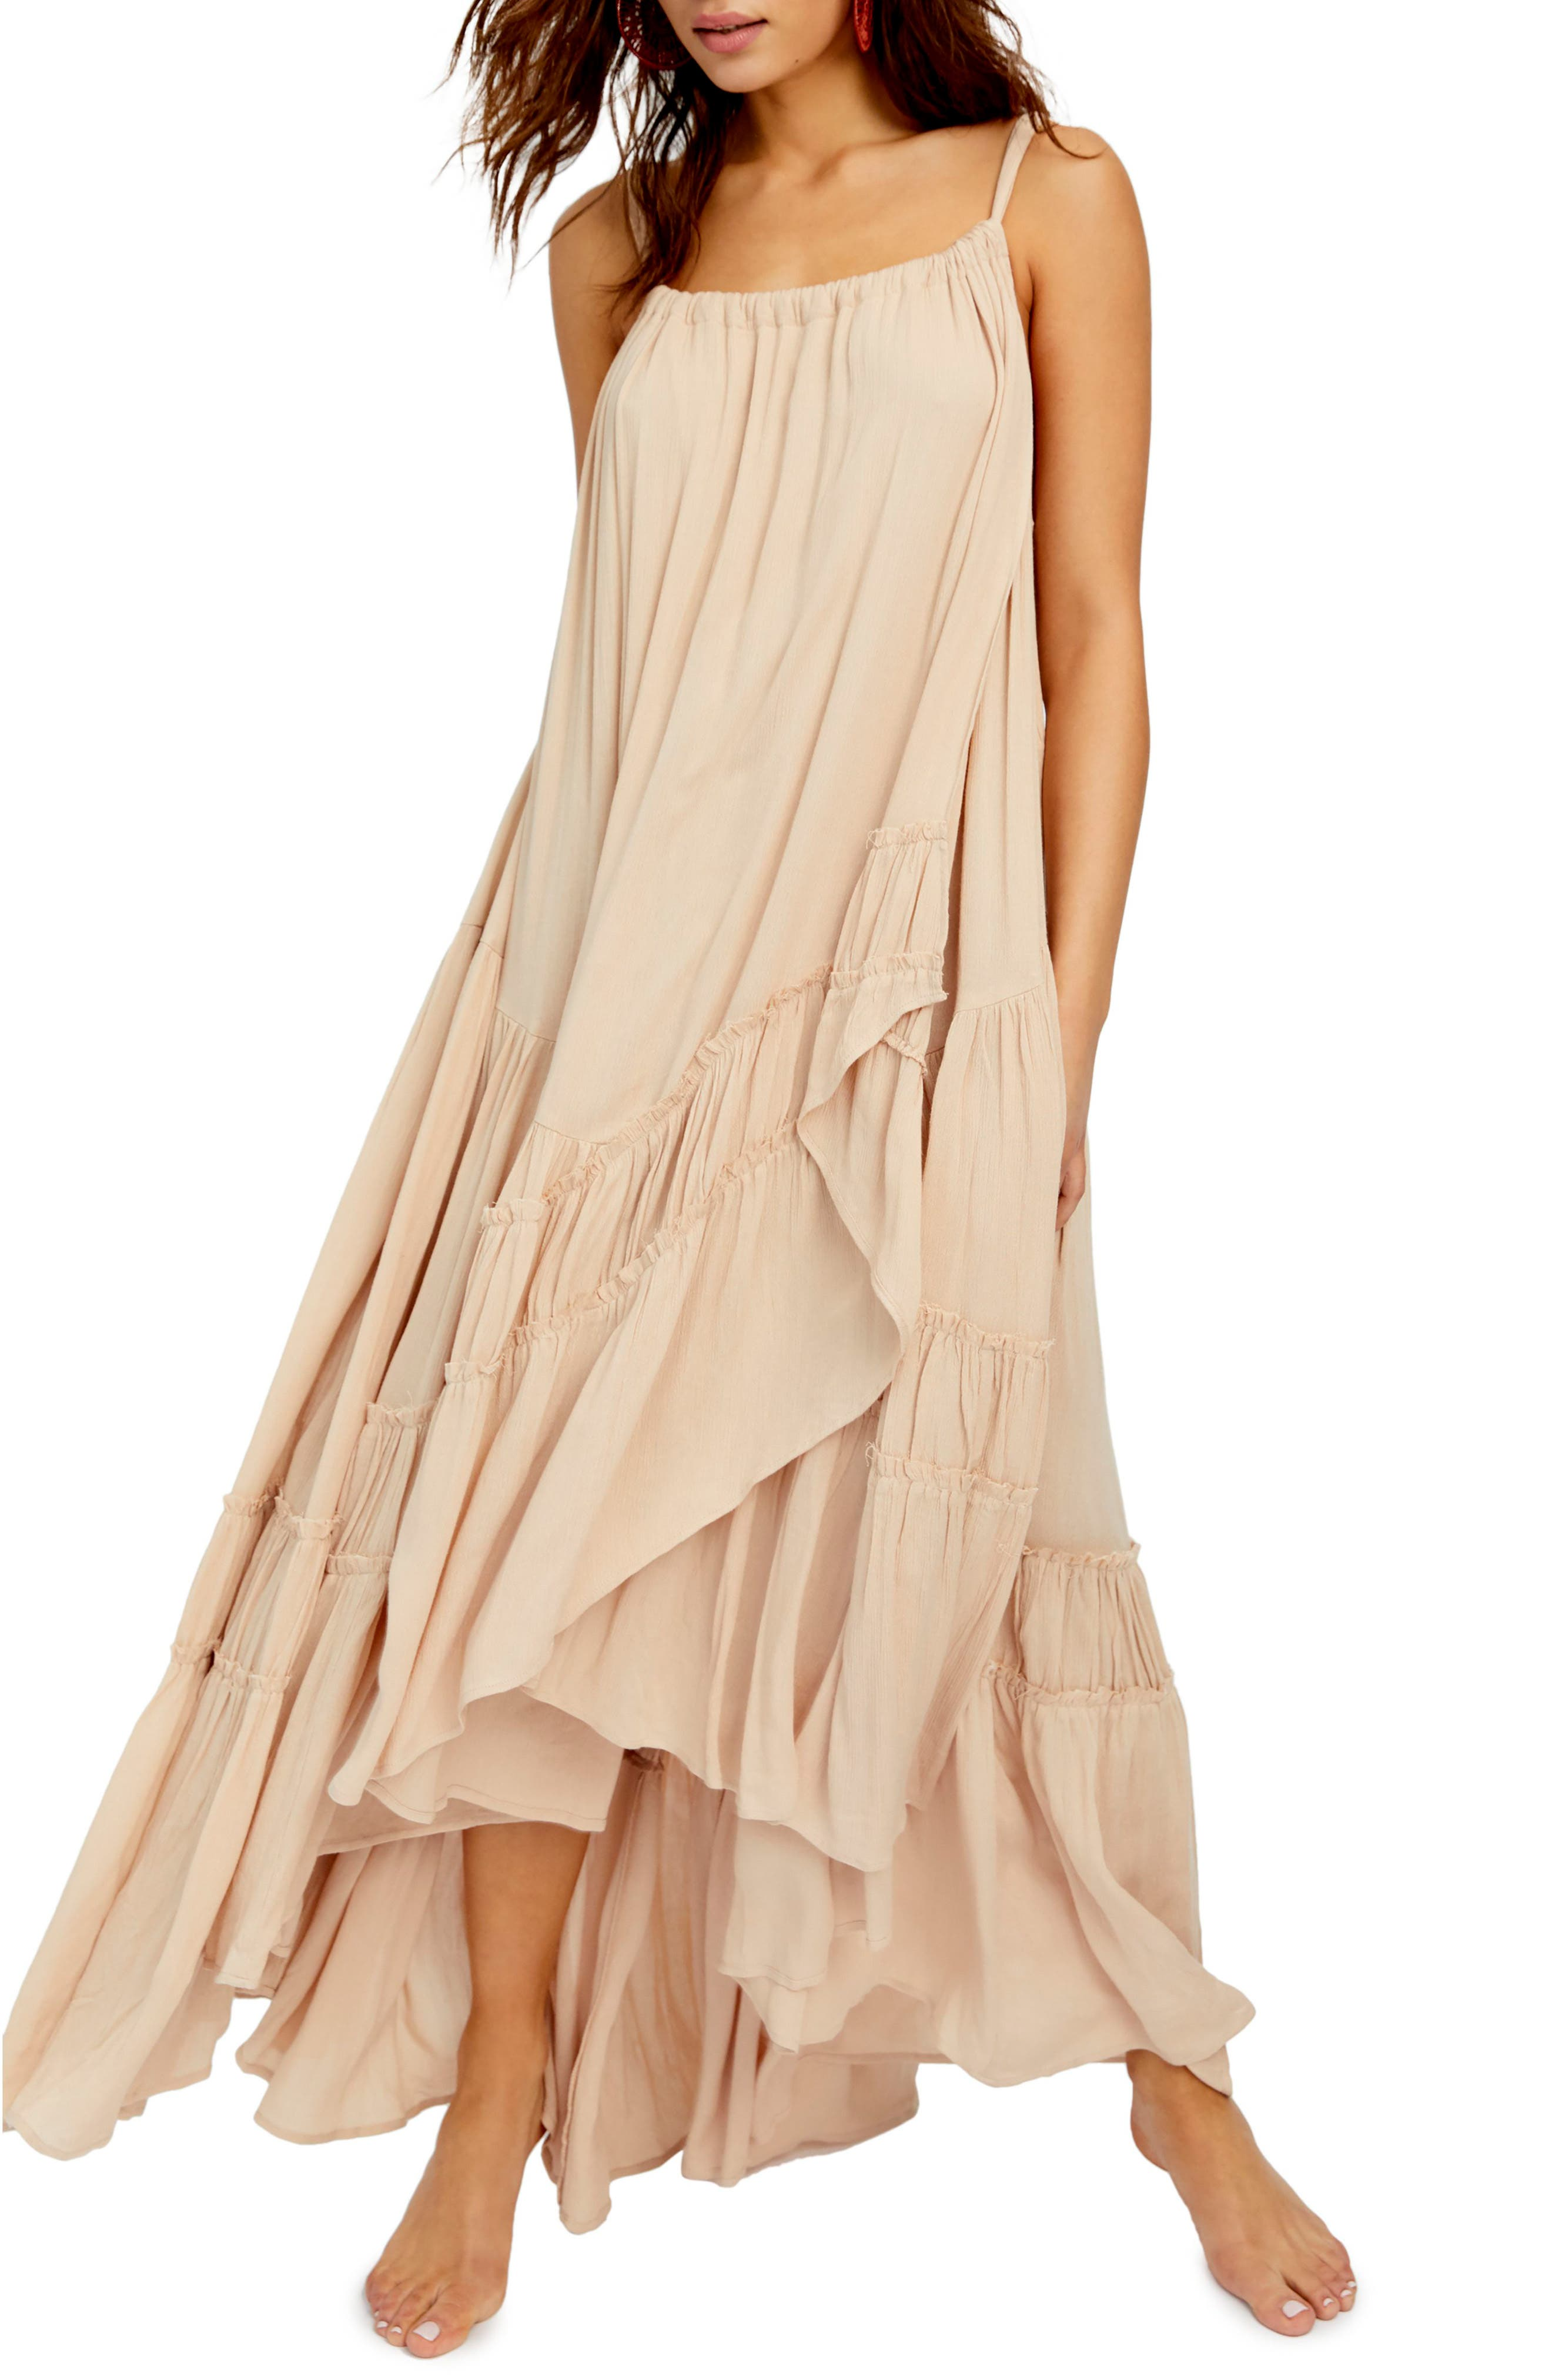 Endless Summer By Free People Bare It All Maxi Dress On sale